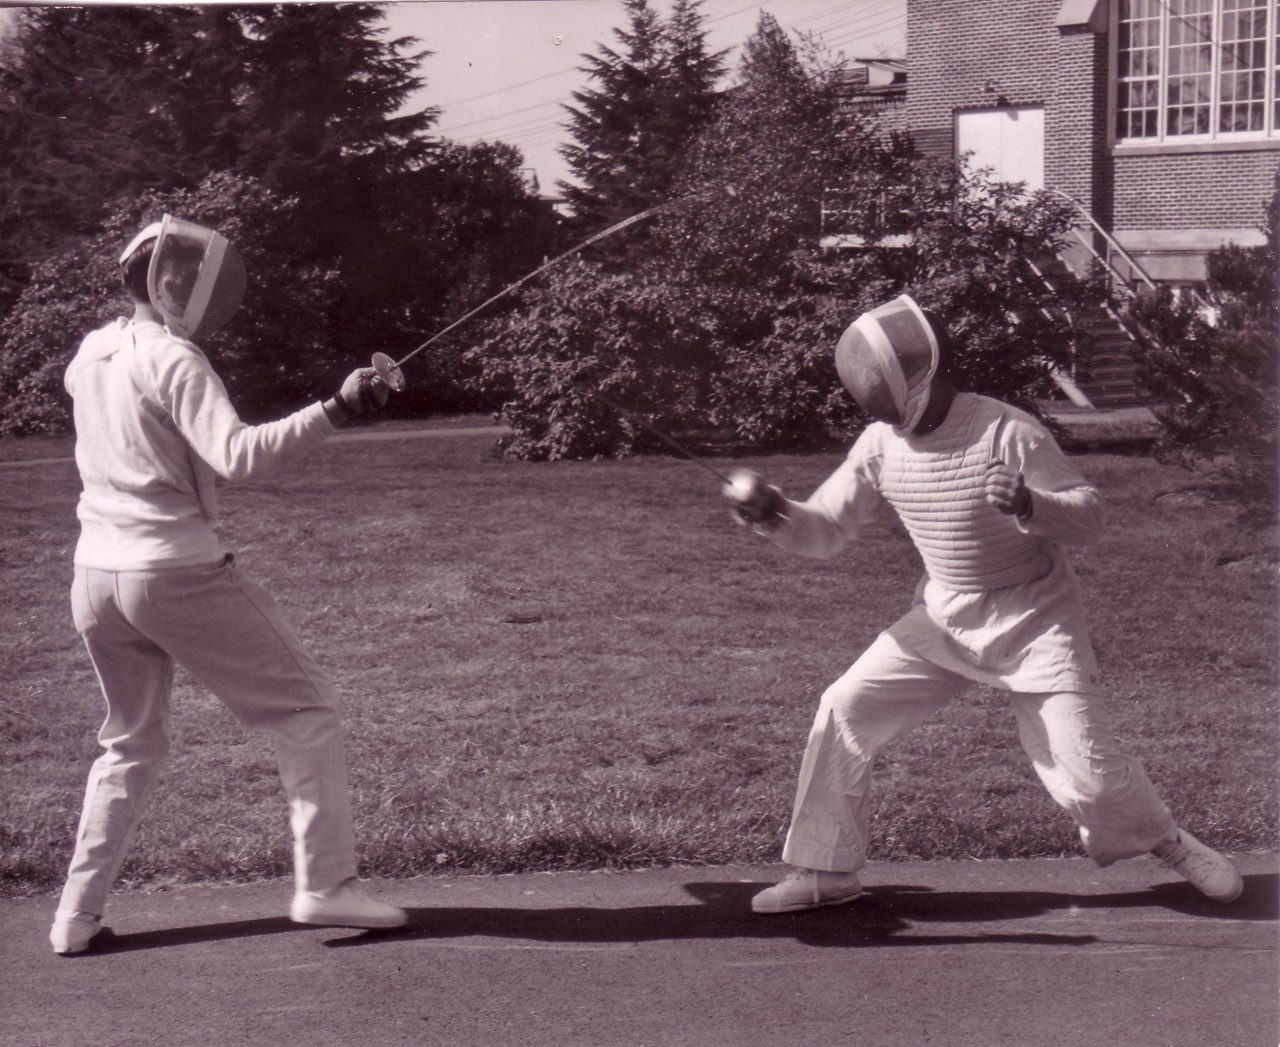 Fencing outside Howard Hall, 1965 (University Archives photo, click to enlarge)